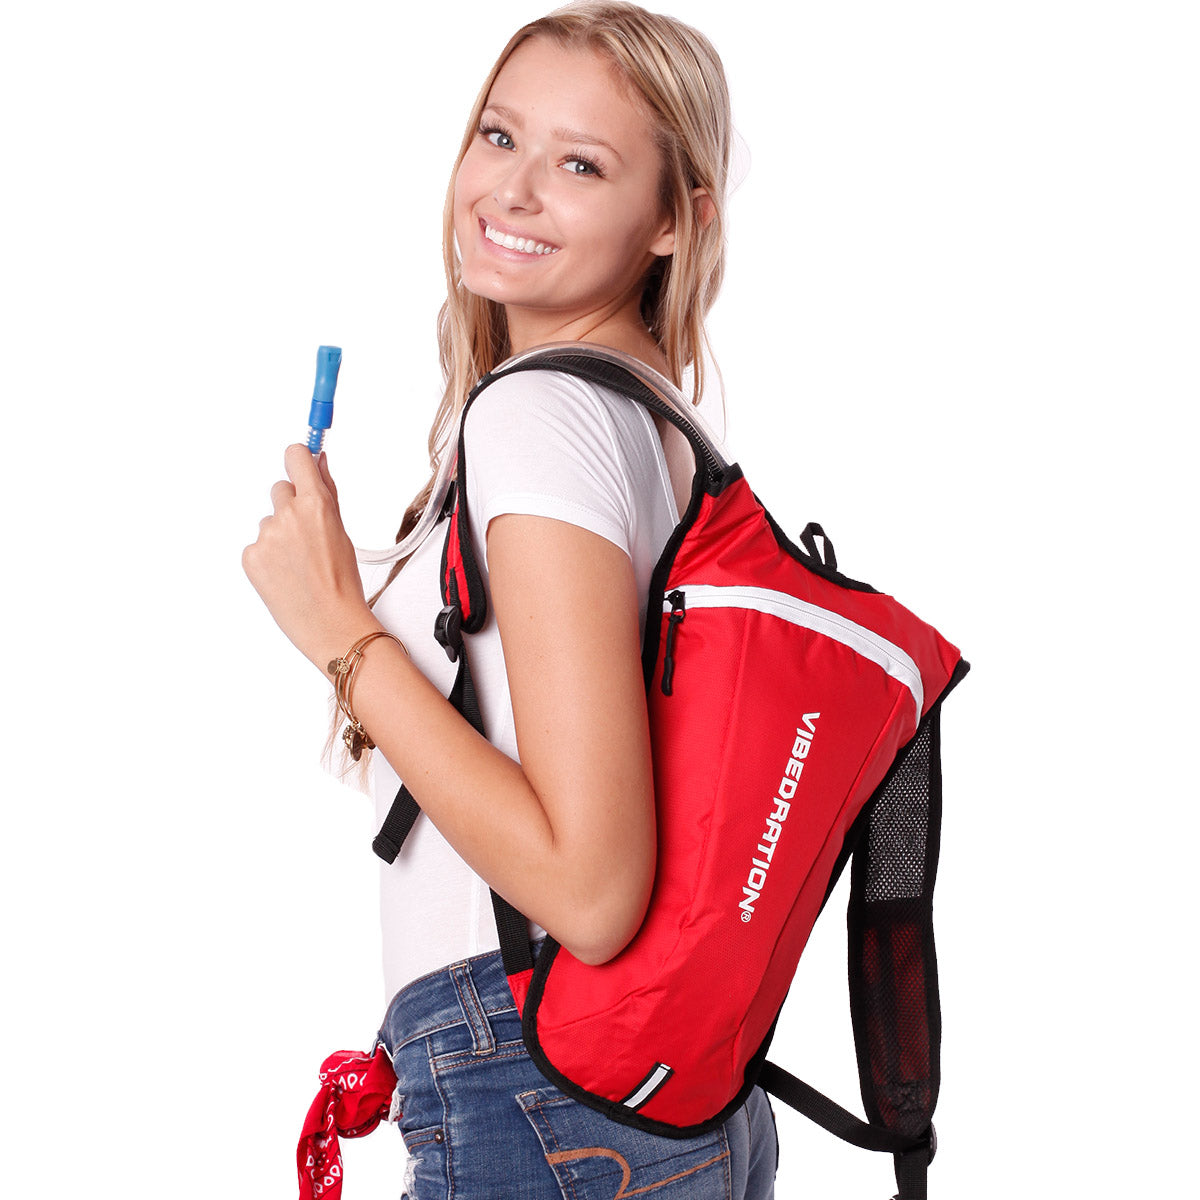 Side view of female wearing red and white hydration pack.